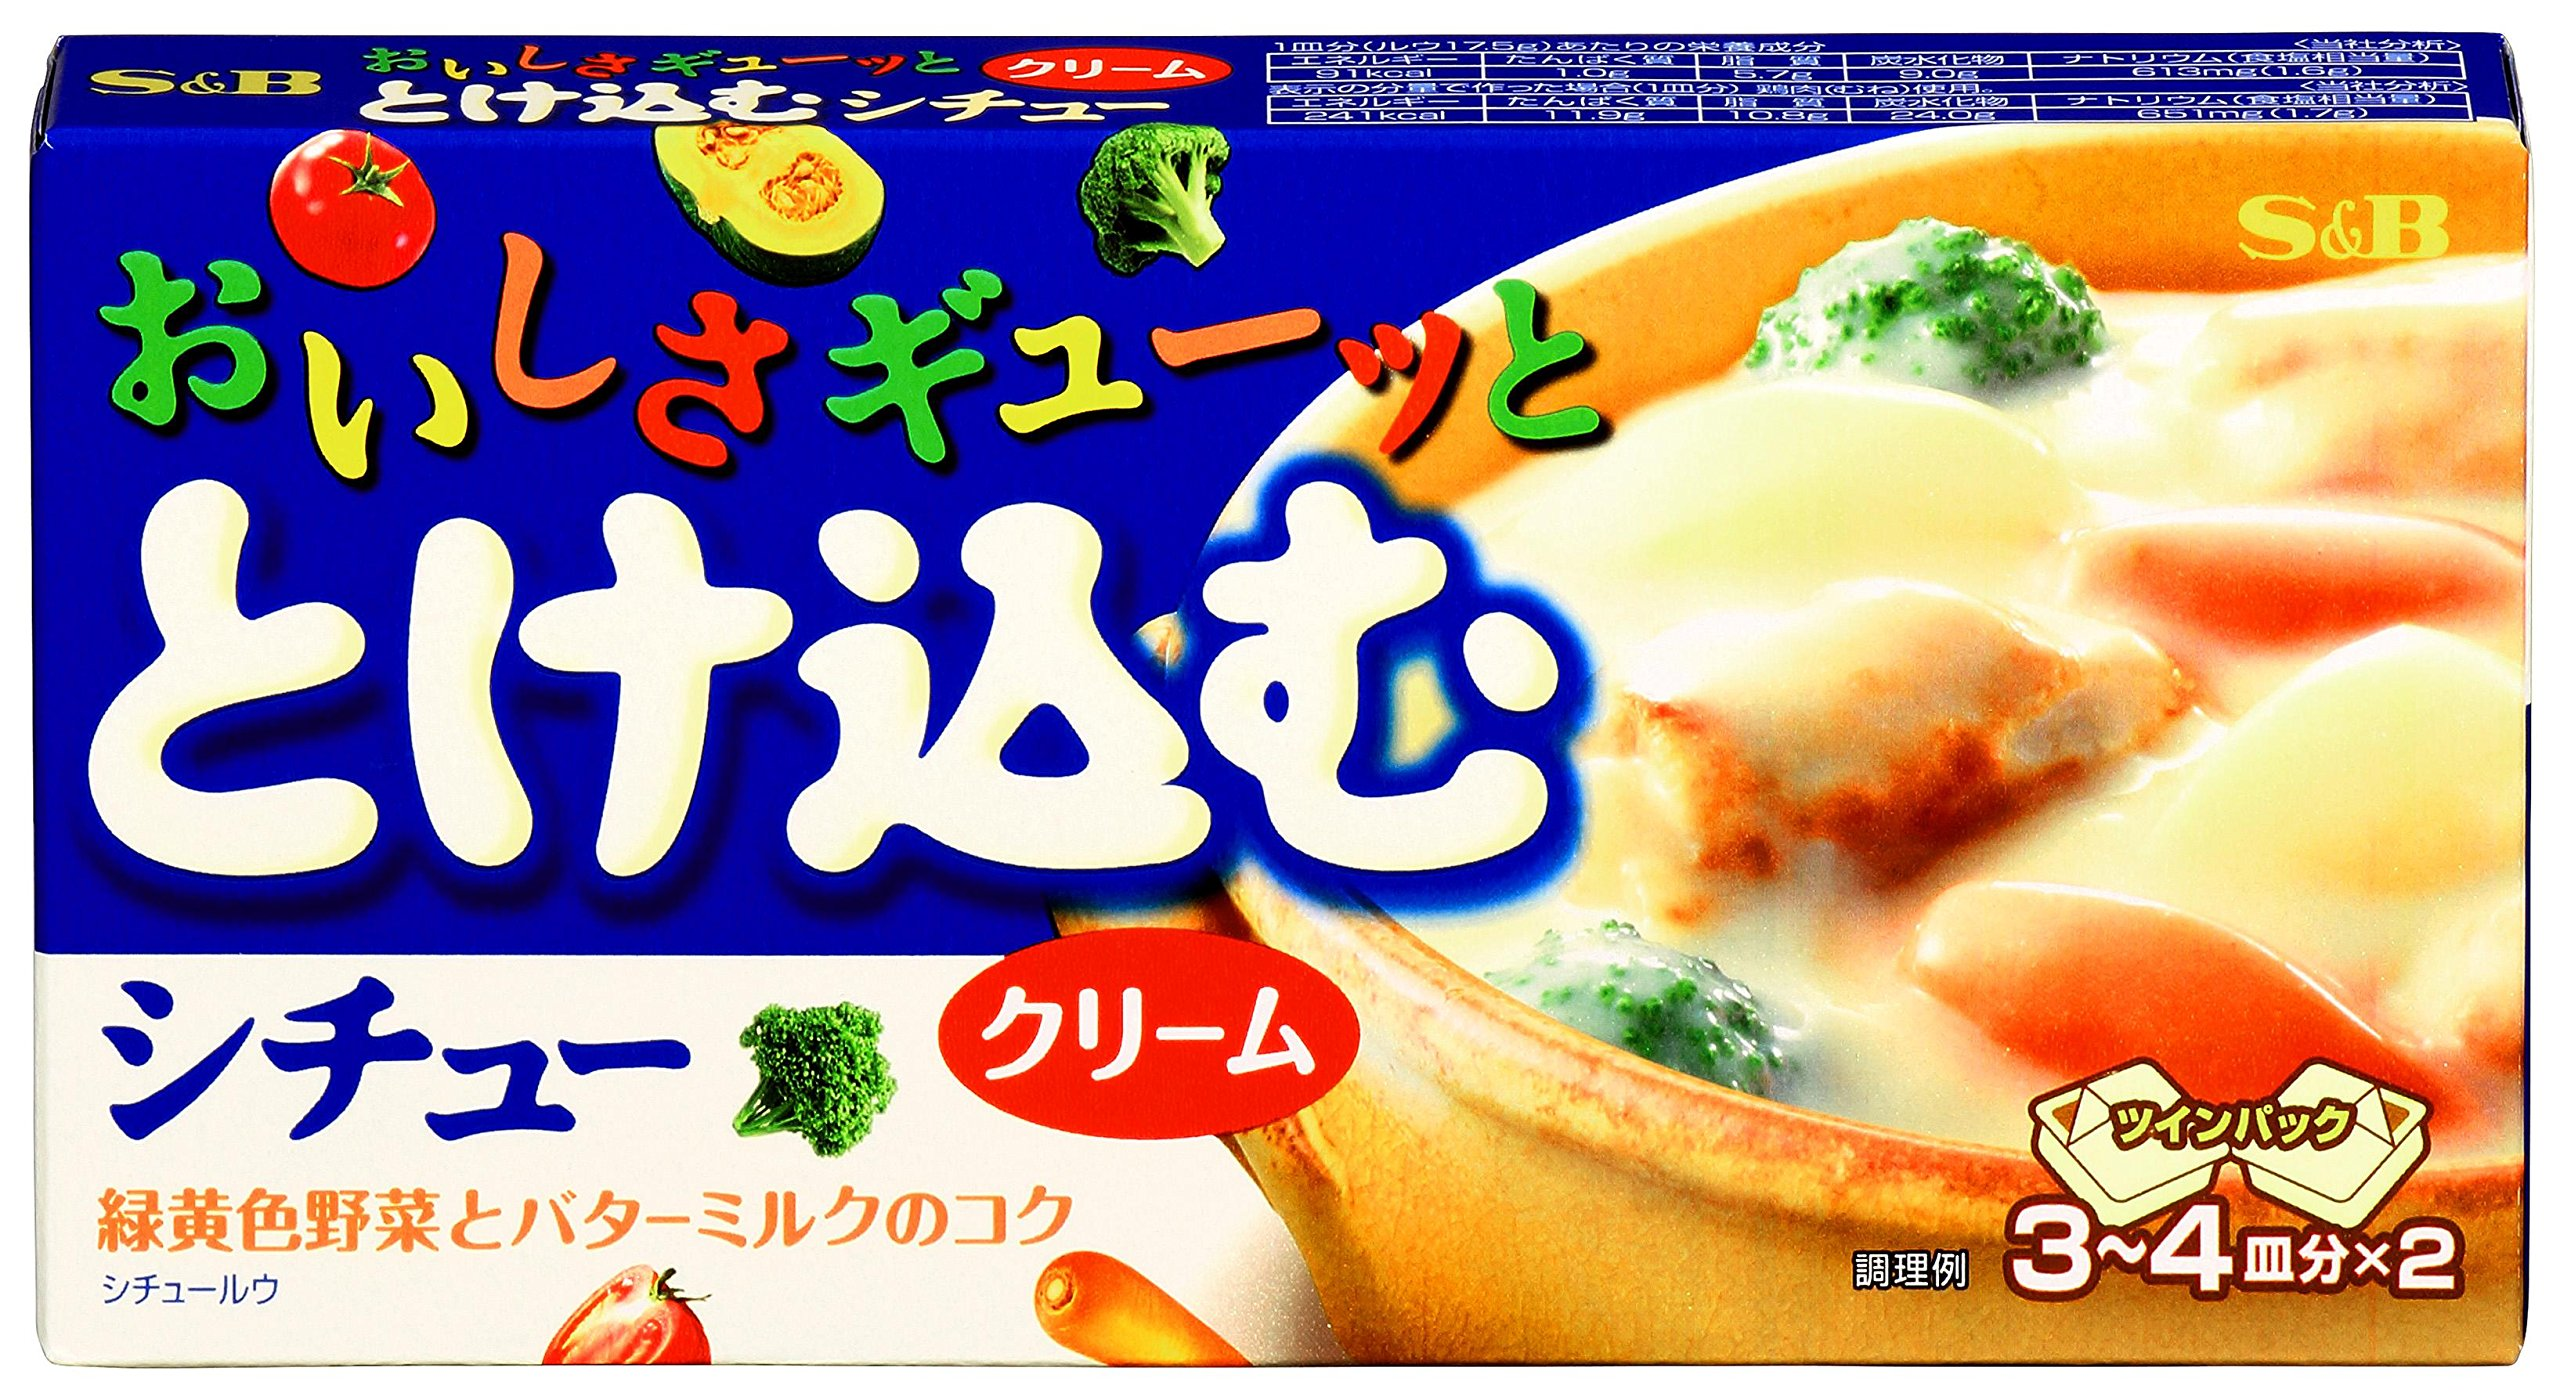 S & amp; B meltingly delicious Gyu~tsu and blend stew cream 140g ~ 5 pieces